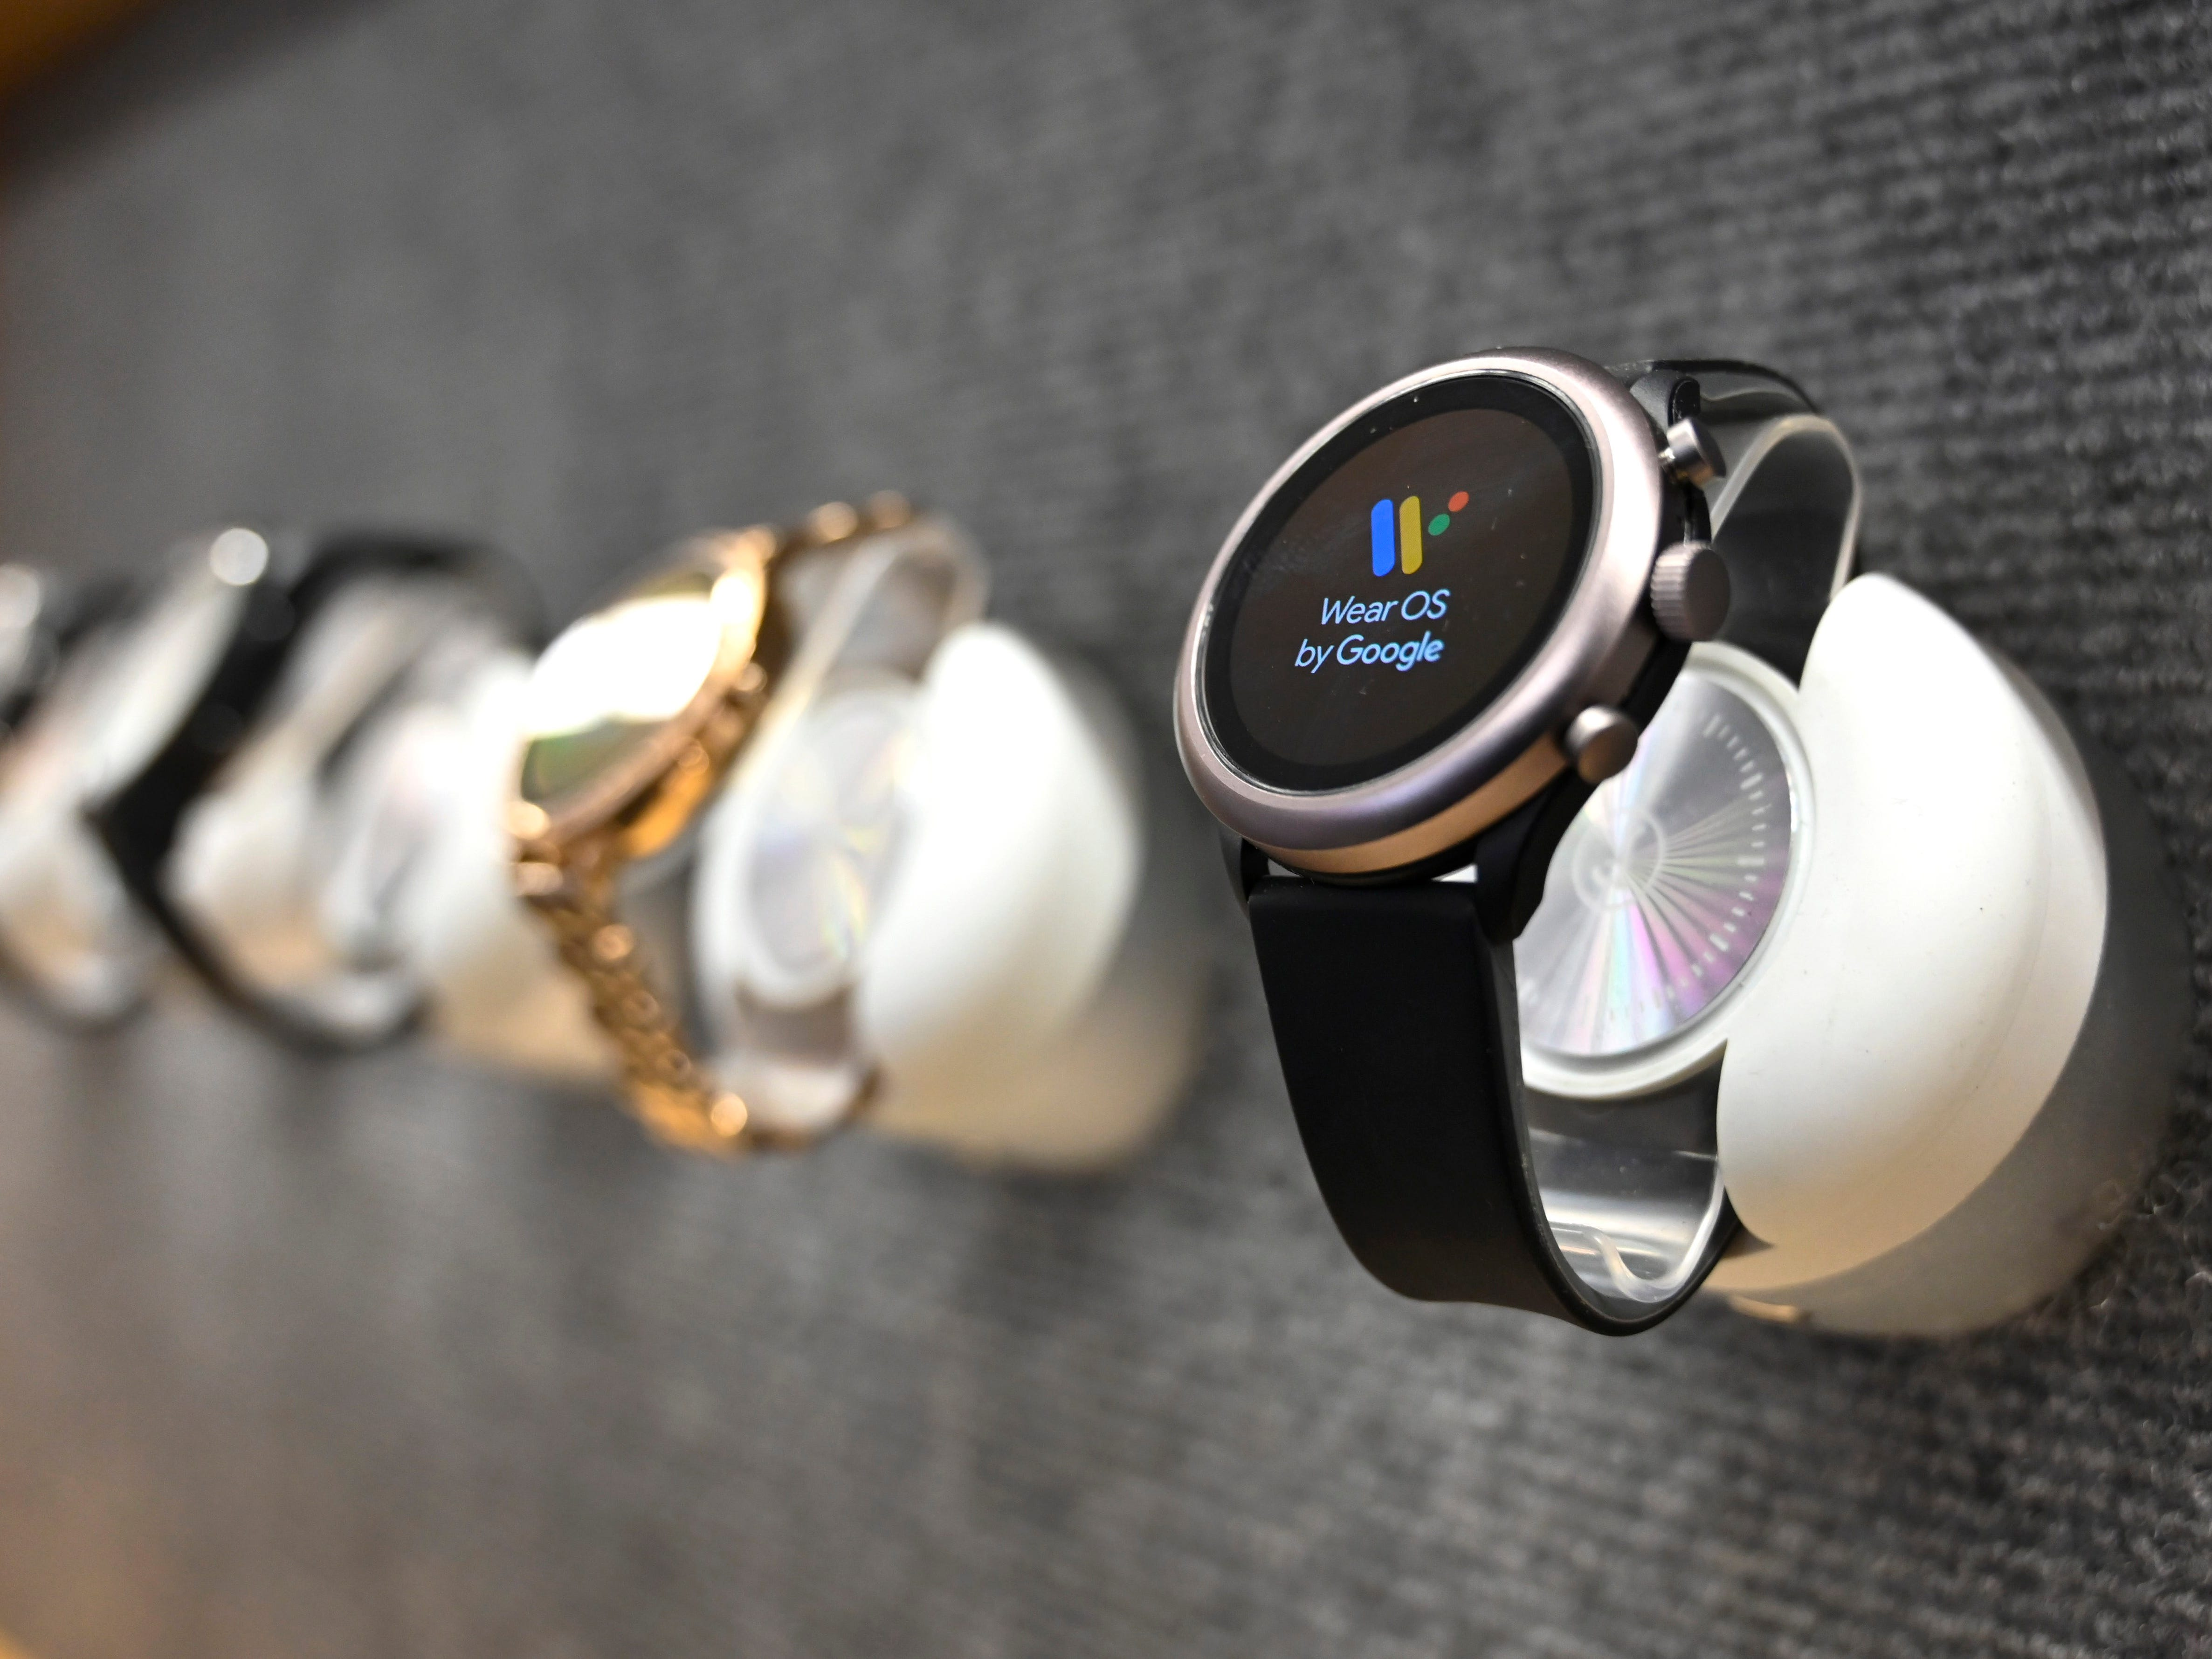 Wear OS by Google smartwatches.